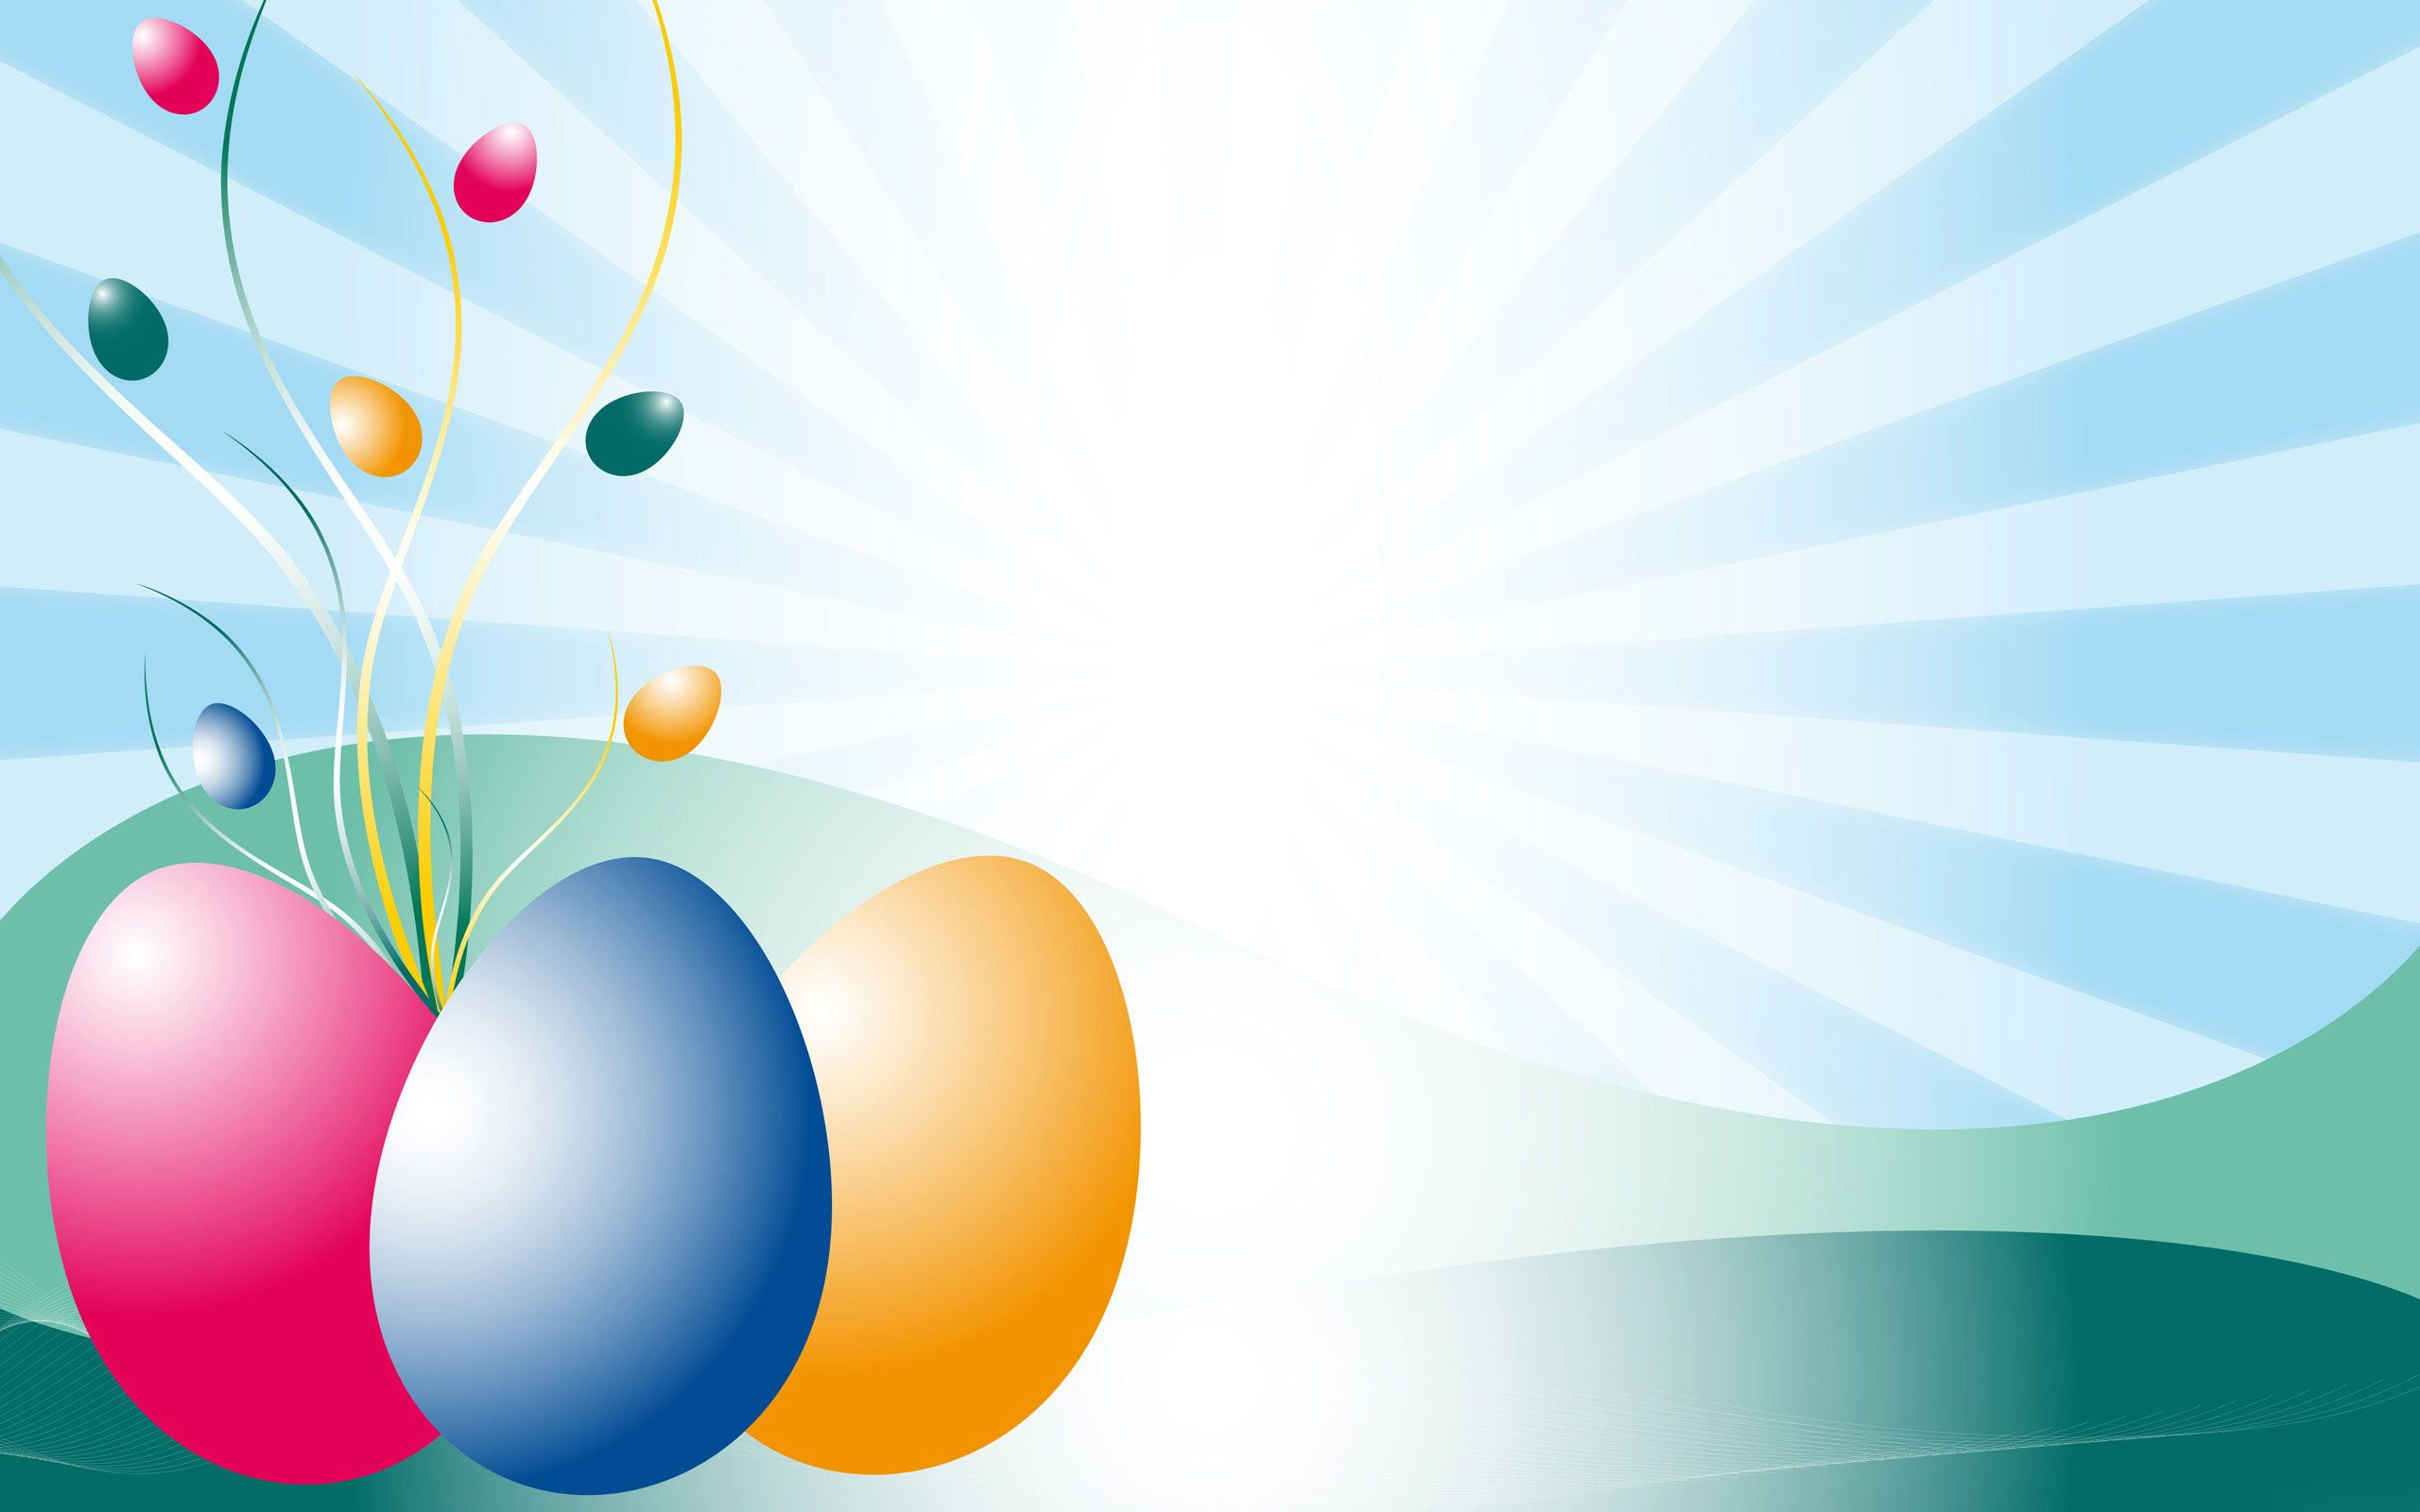 Easter Background - Download Free #Easter #Background in 2880x1800 ...